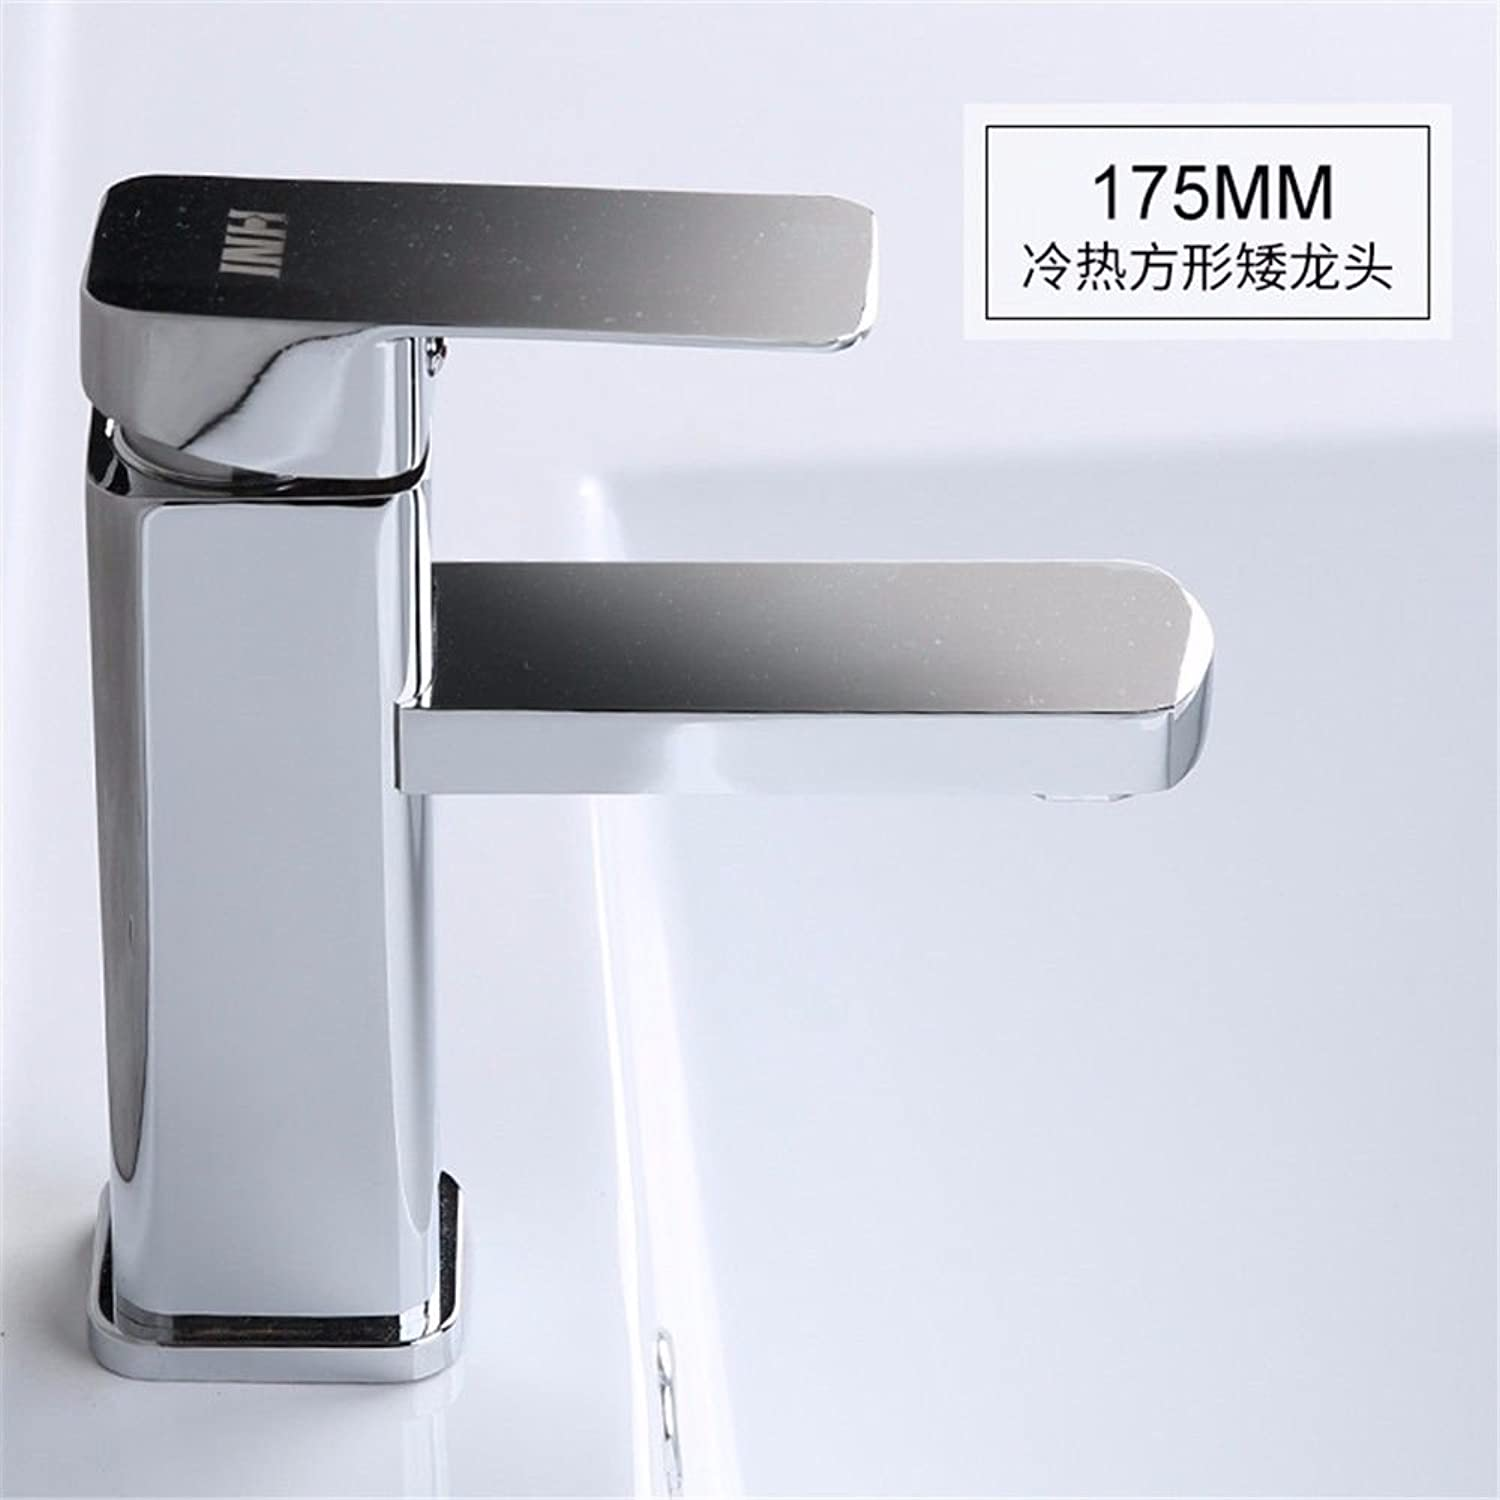 AQMMi Bathroom Sink Mixer Tap Single Lever Brass Hot and Cold Water Taps for Bathroom Sink